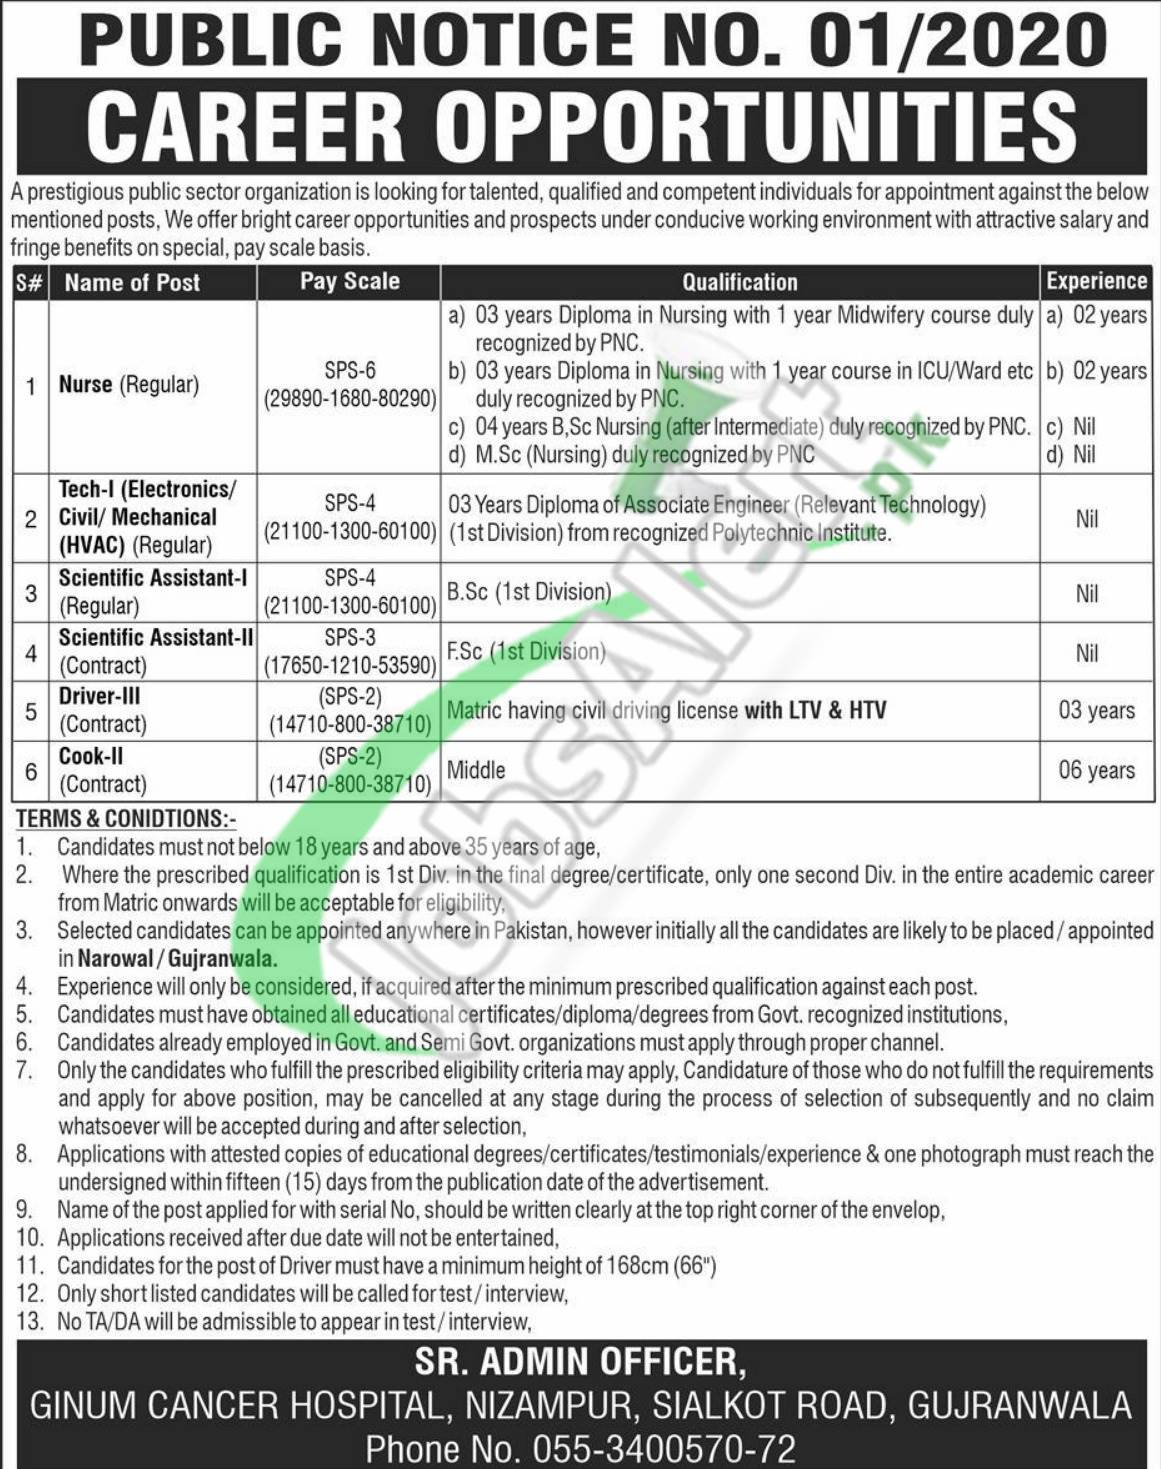 GINUM Hospital Gujranwala Career Opportunities